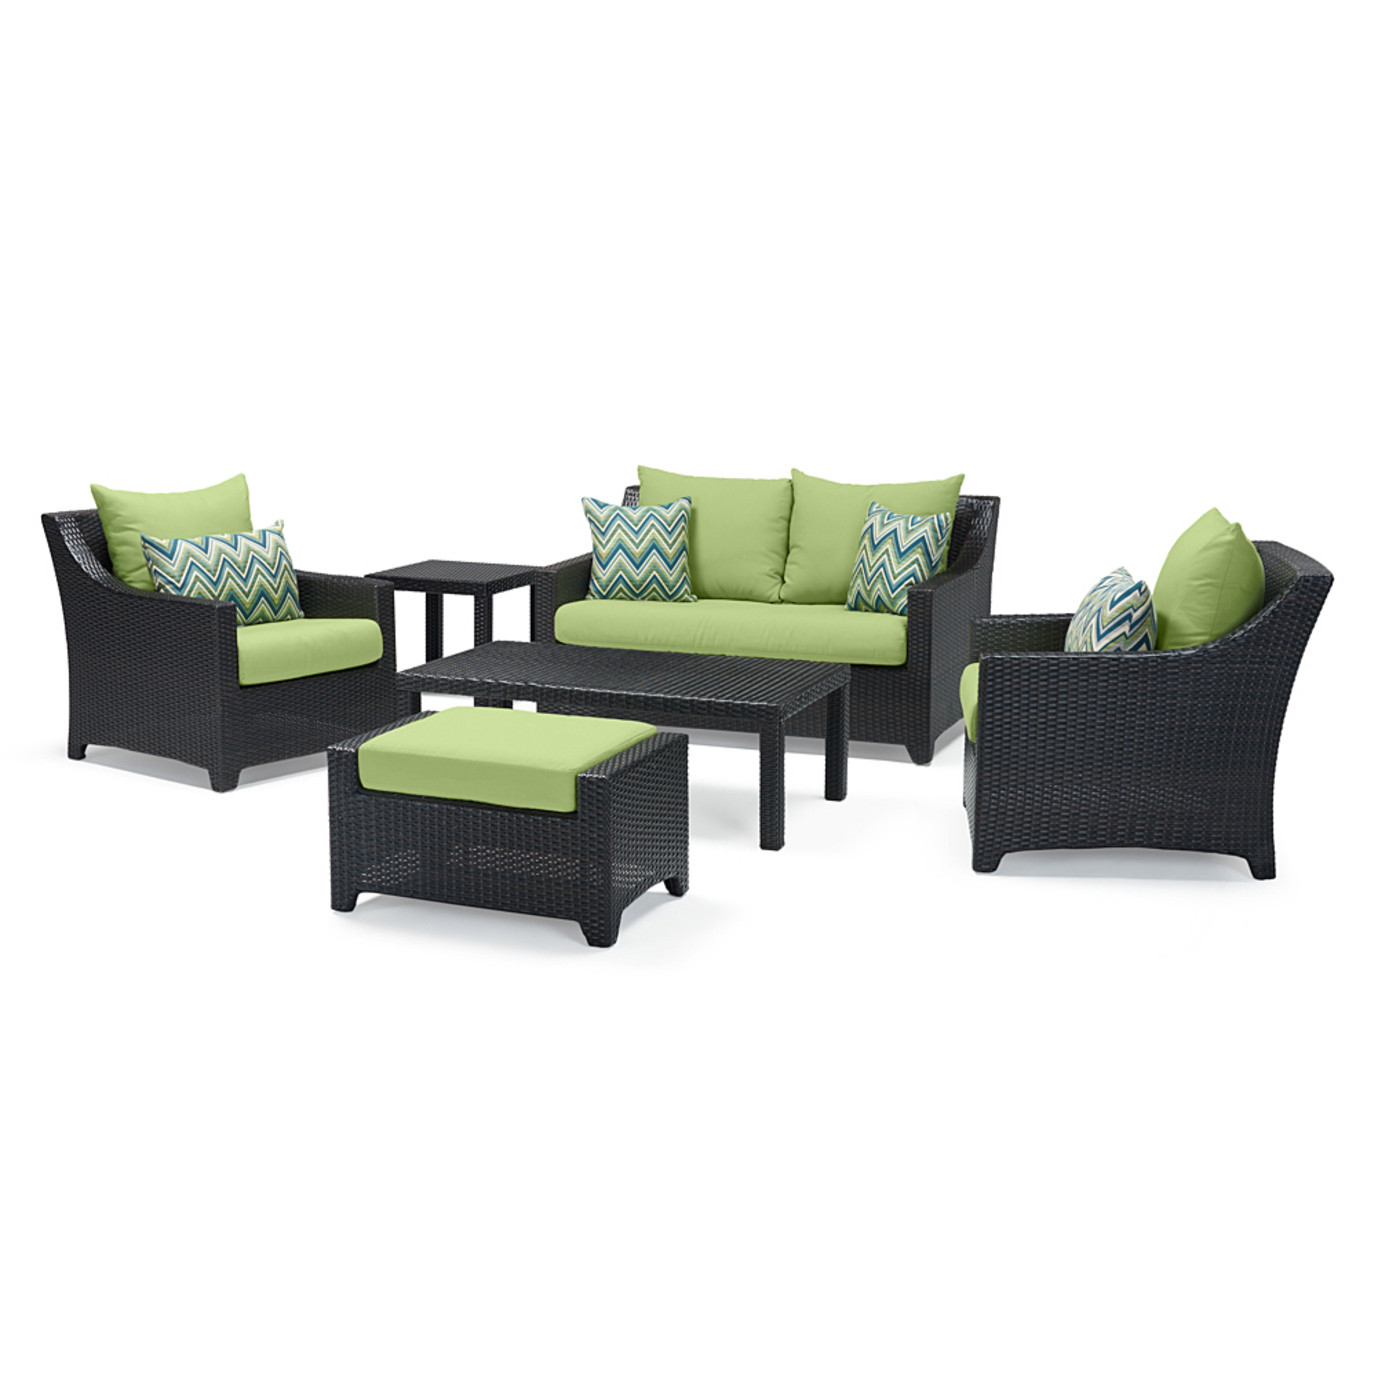 Deco™ 6 Piece Love and Club Seating Set - Ginkgo Green